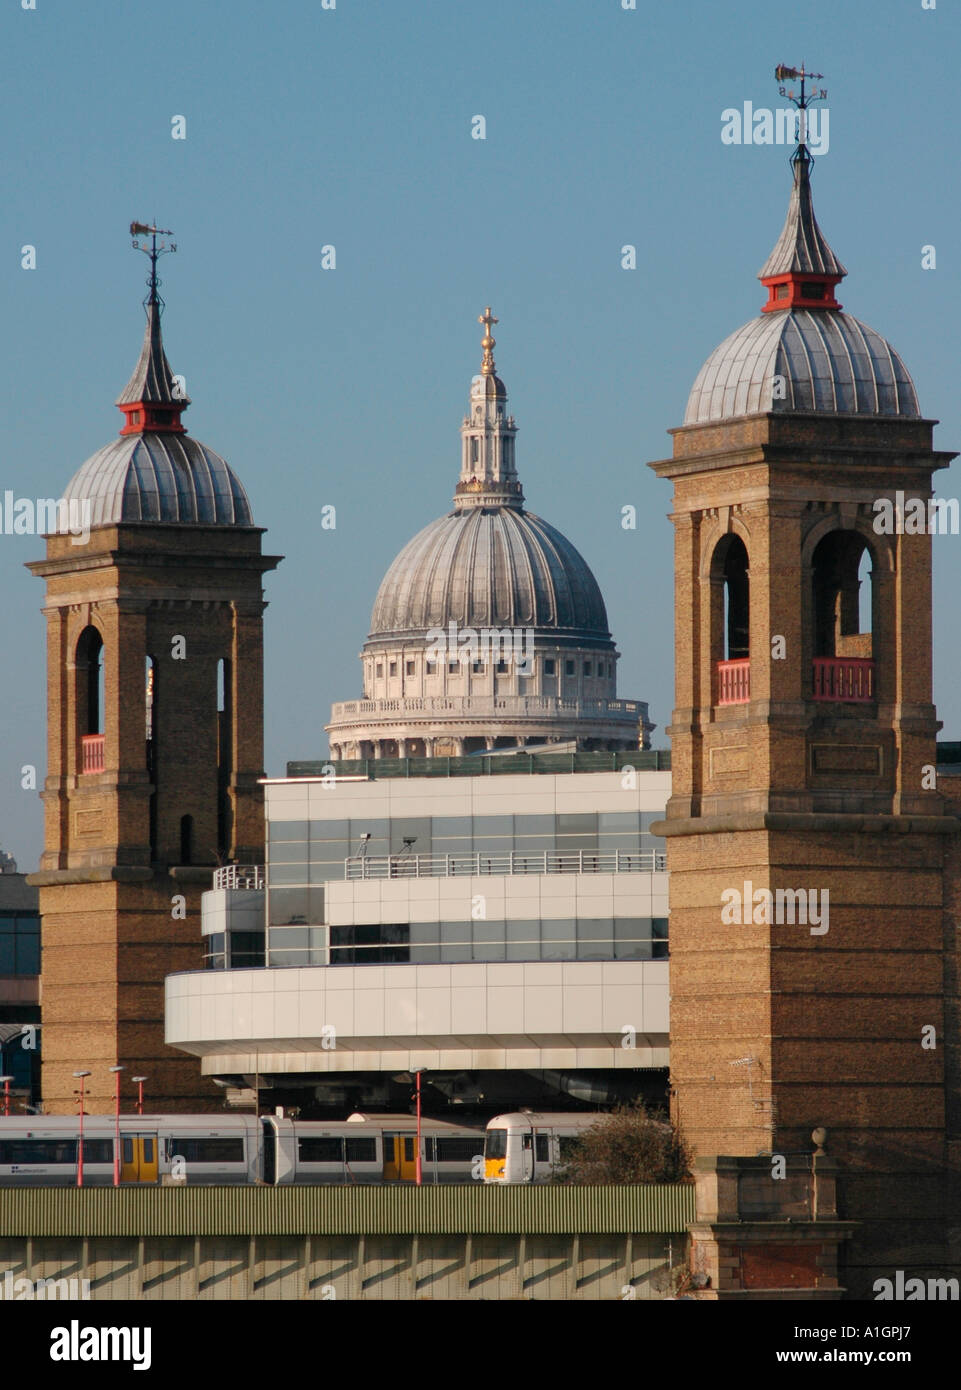 The dome of St Paul's Cathedral framed by the twin brick towers of Cannon Street Station - Stock Image